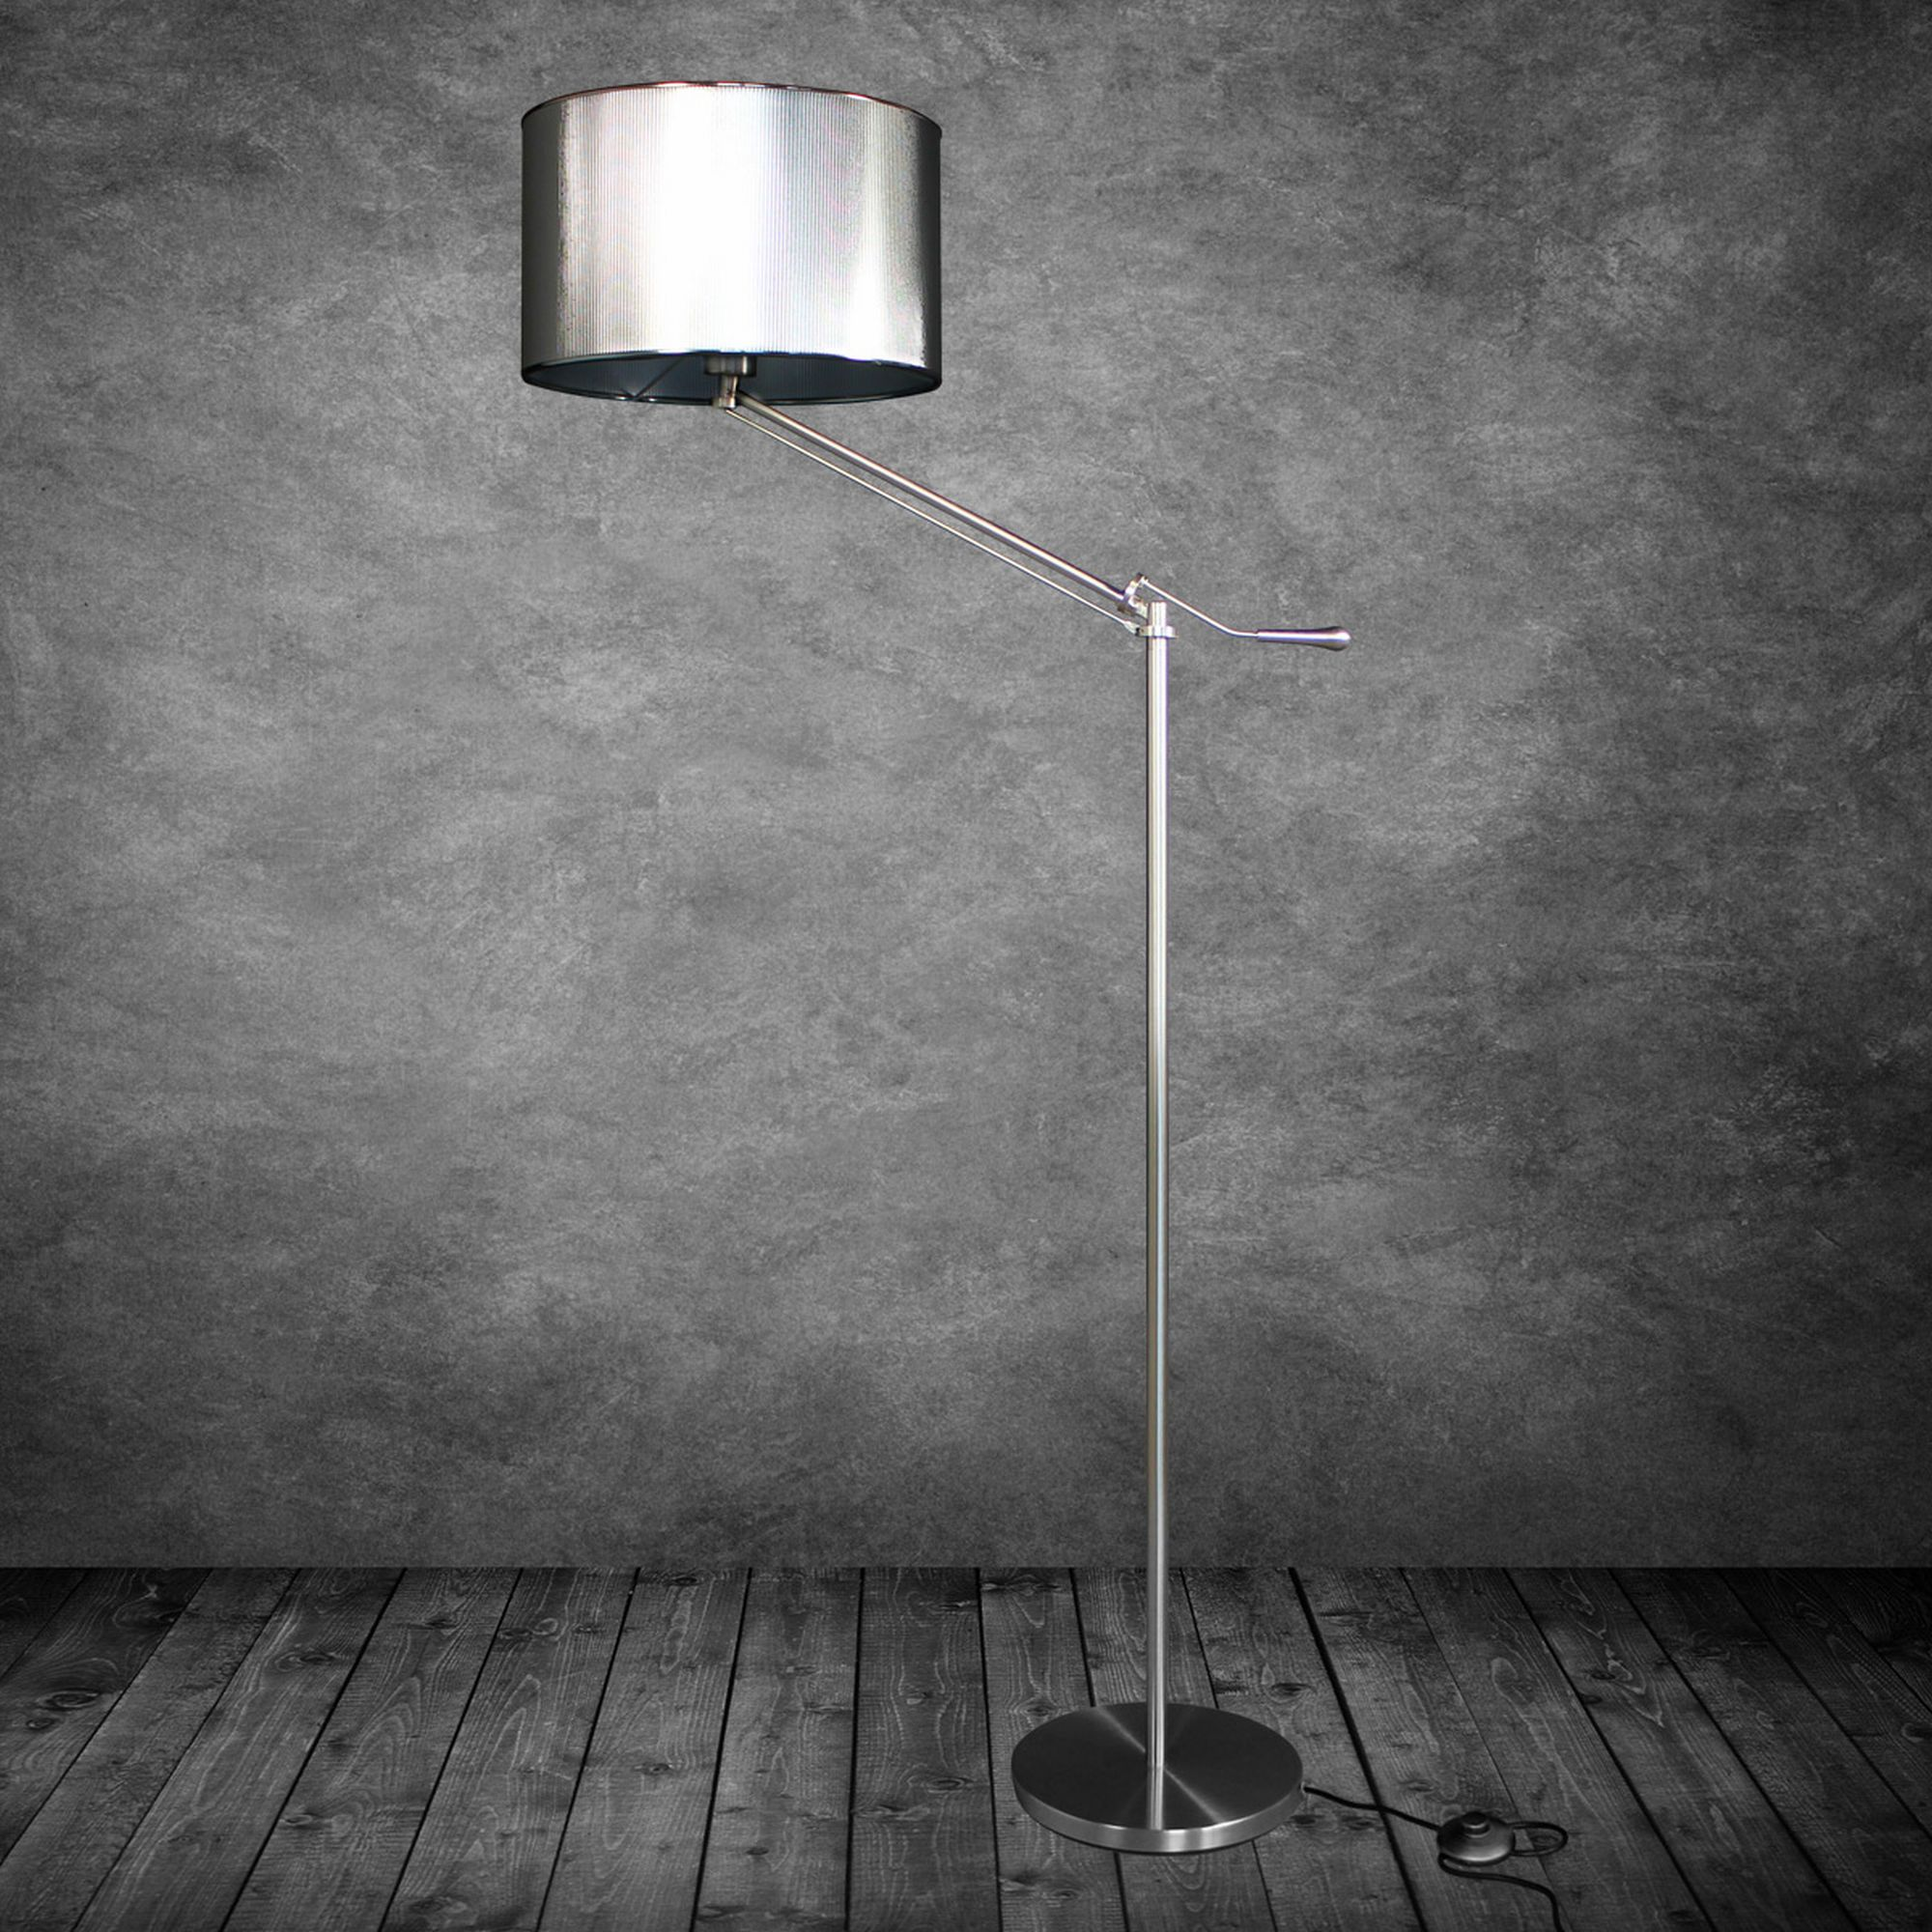 Lux Pro Moderne Eclairage Vertical Lampadaire Lampe